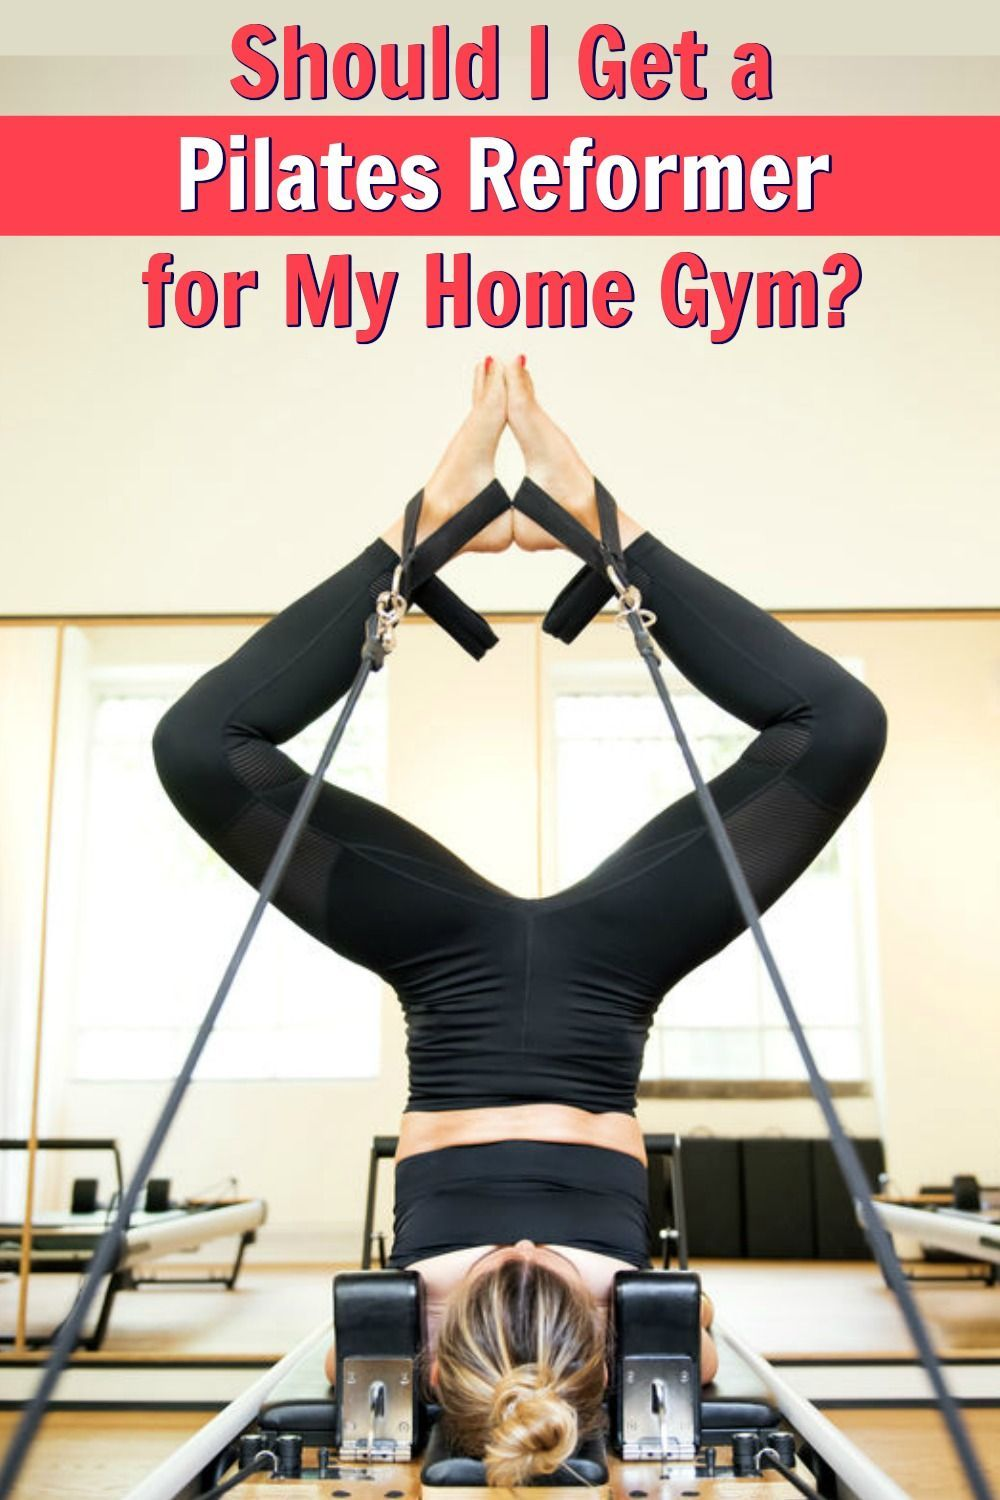 Should you get a Pilates reformer for your home gym? Click-through to see how to determine if the ap...